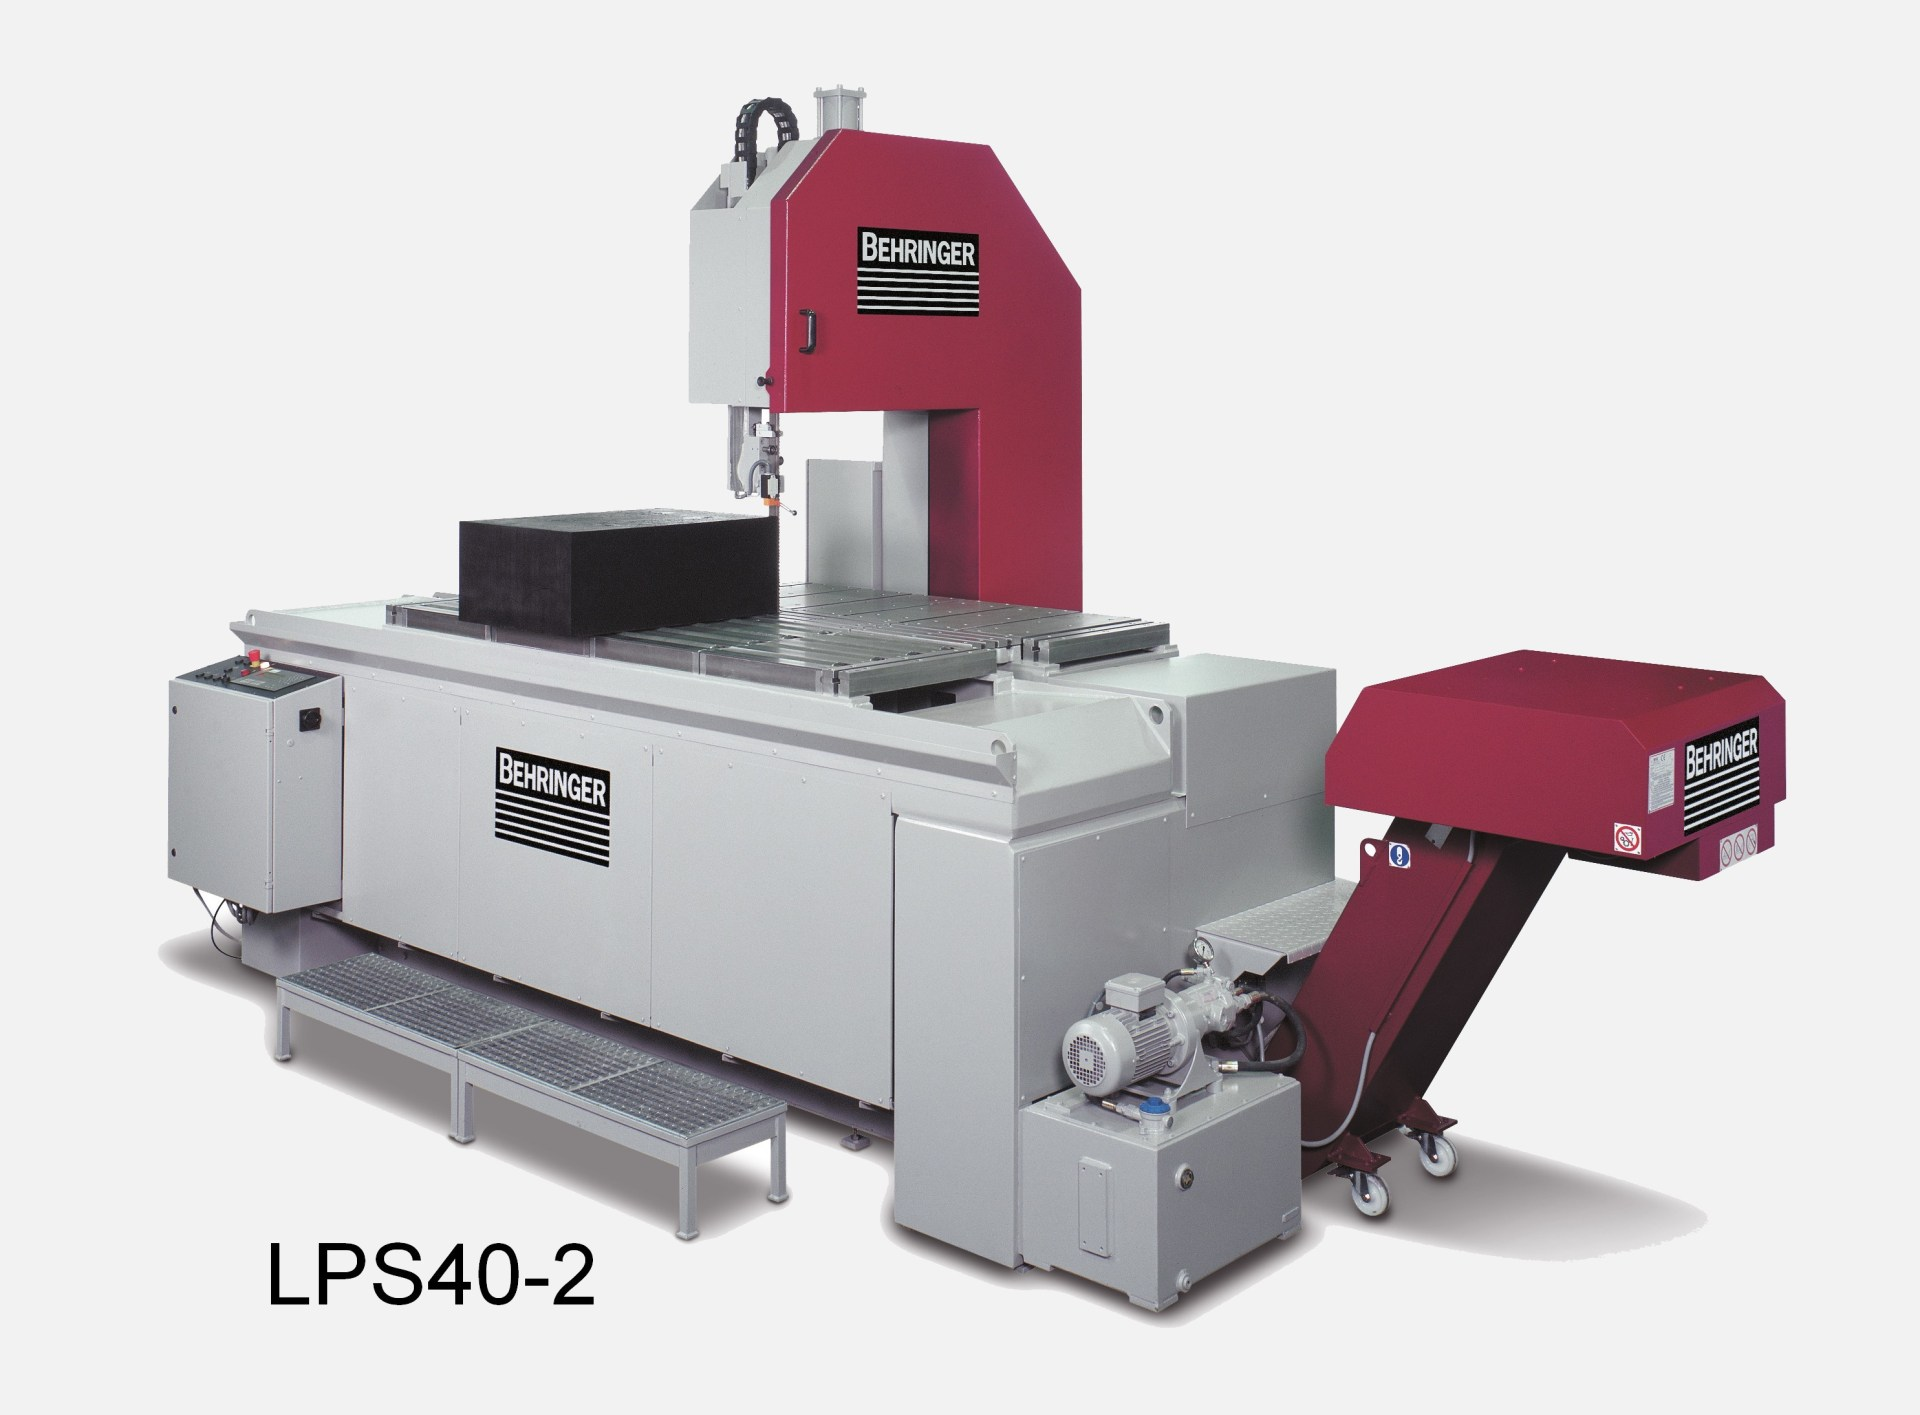 LPS40-2